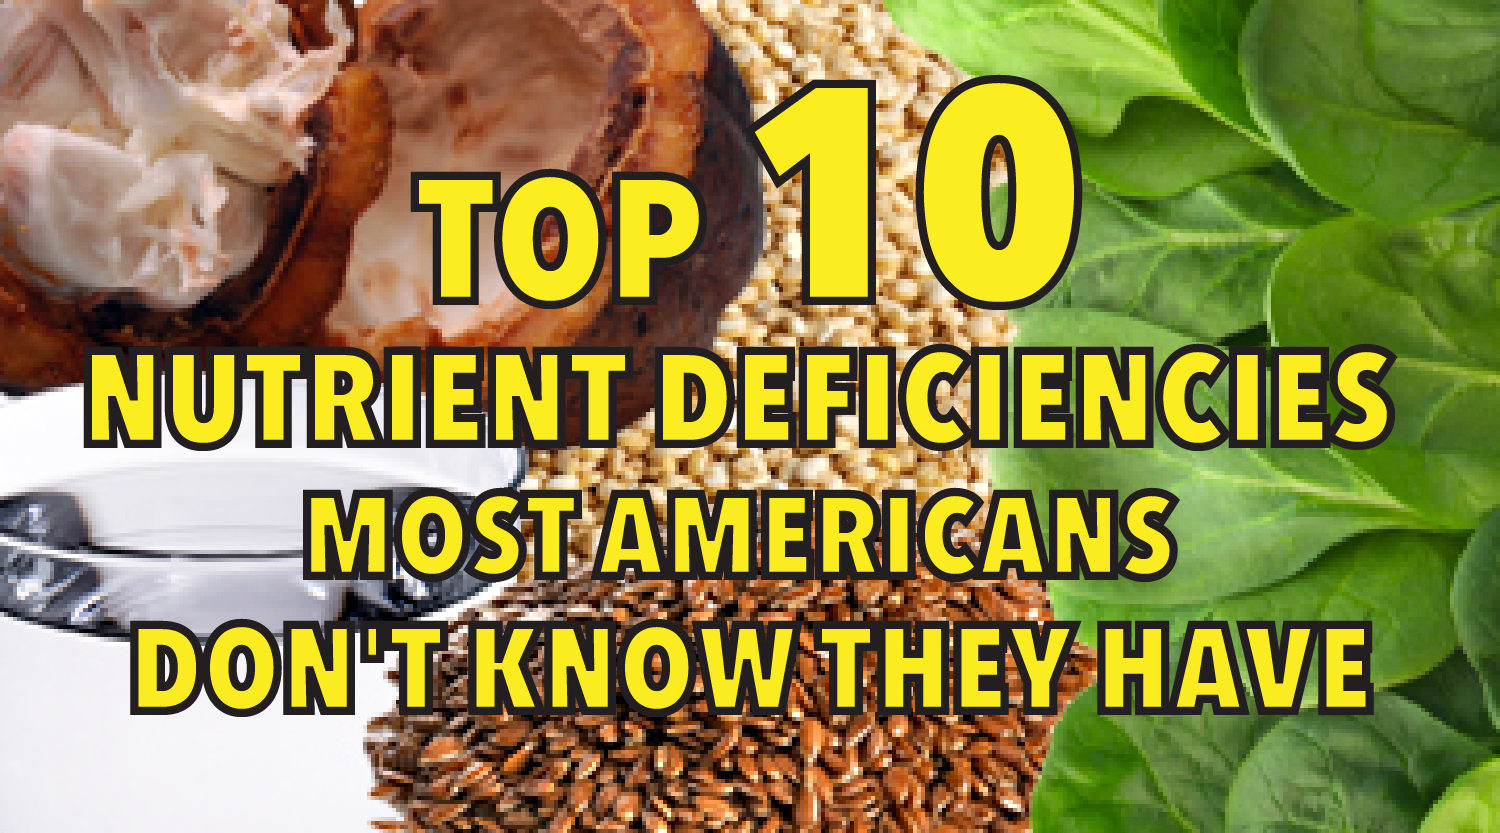 Top 10 nutrient deficiencies most Americans don't know they have